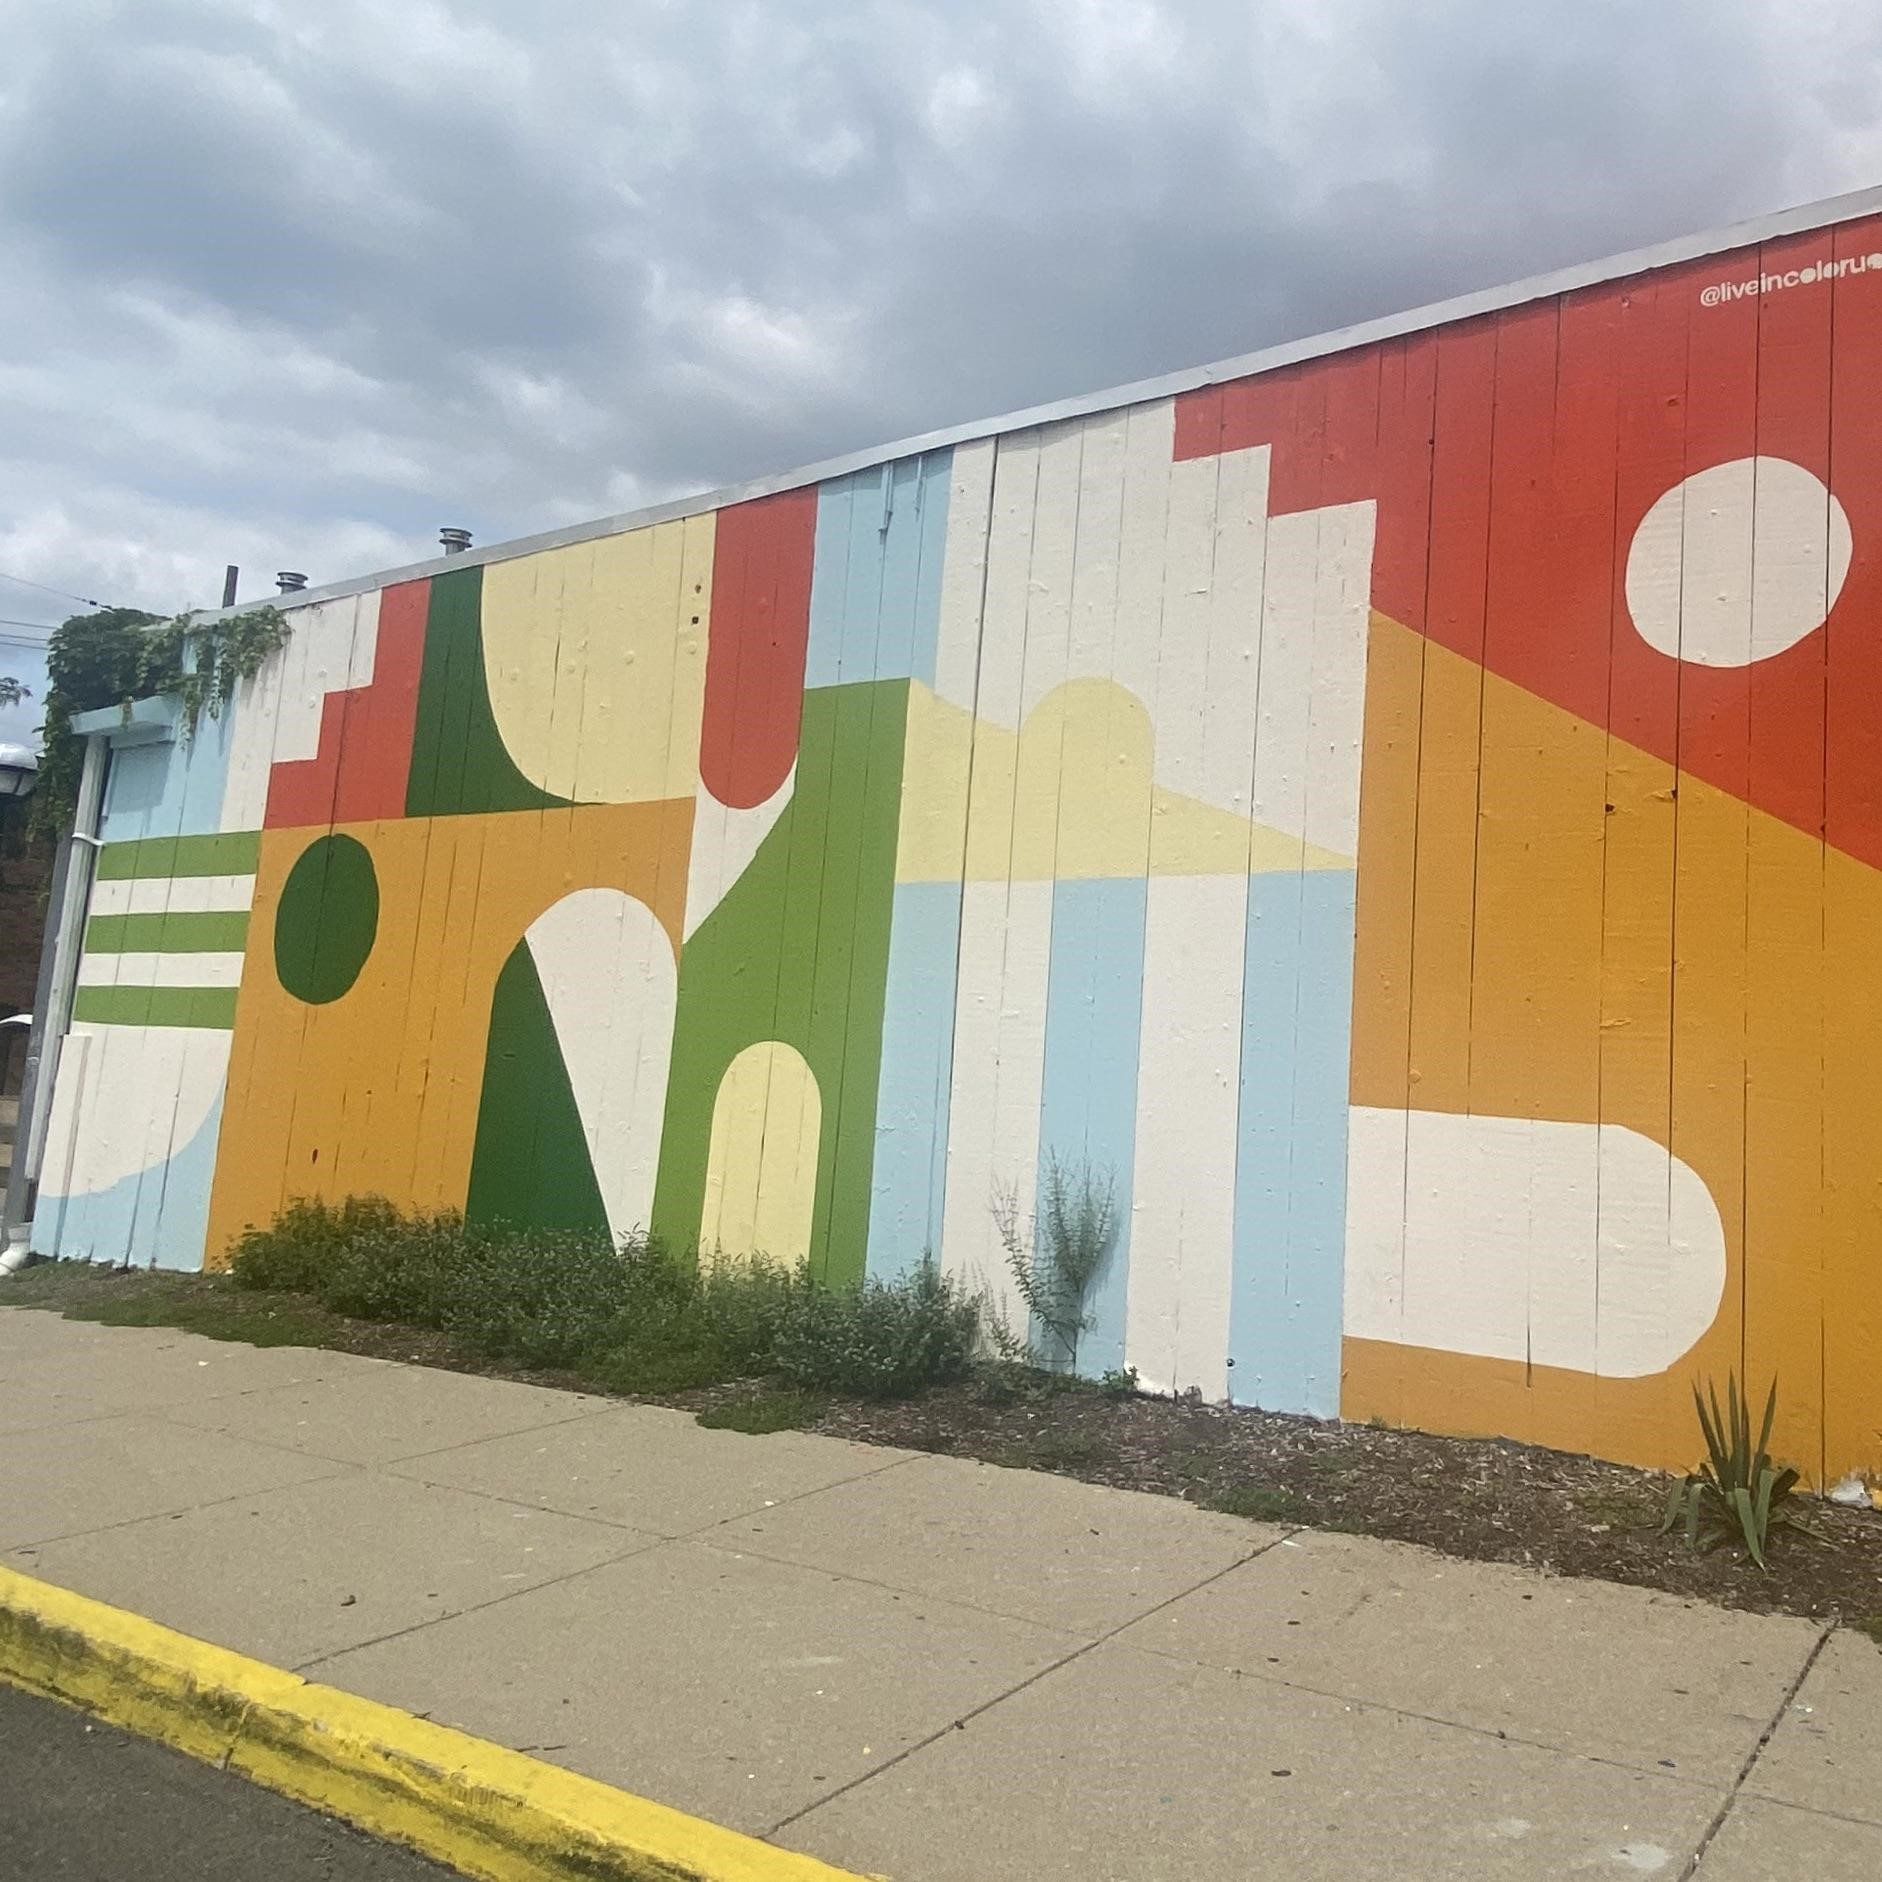 a2ac instagram-able mural